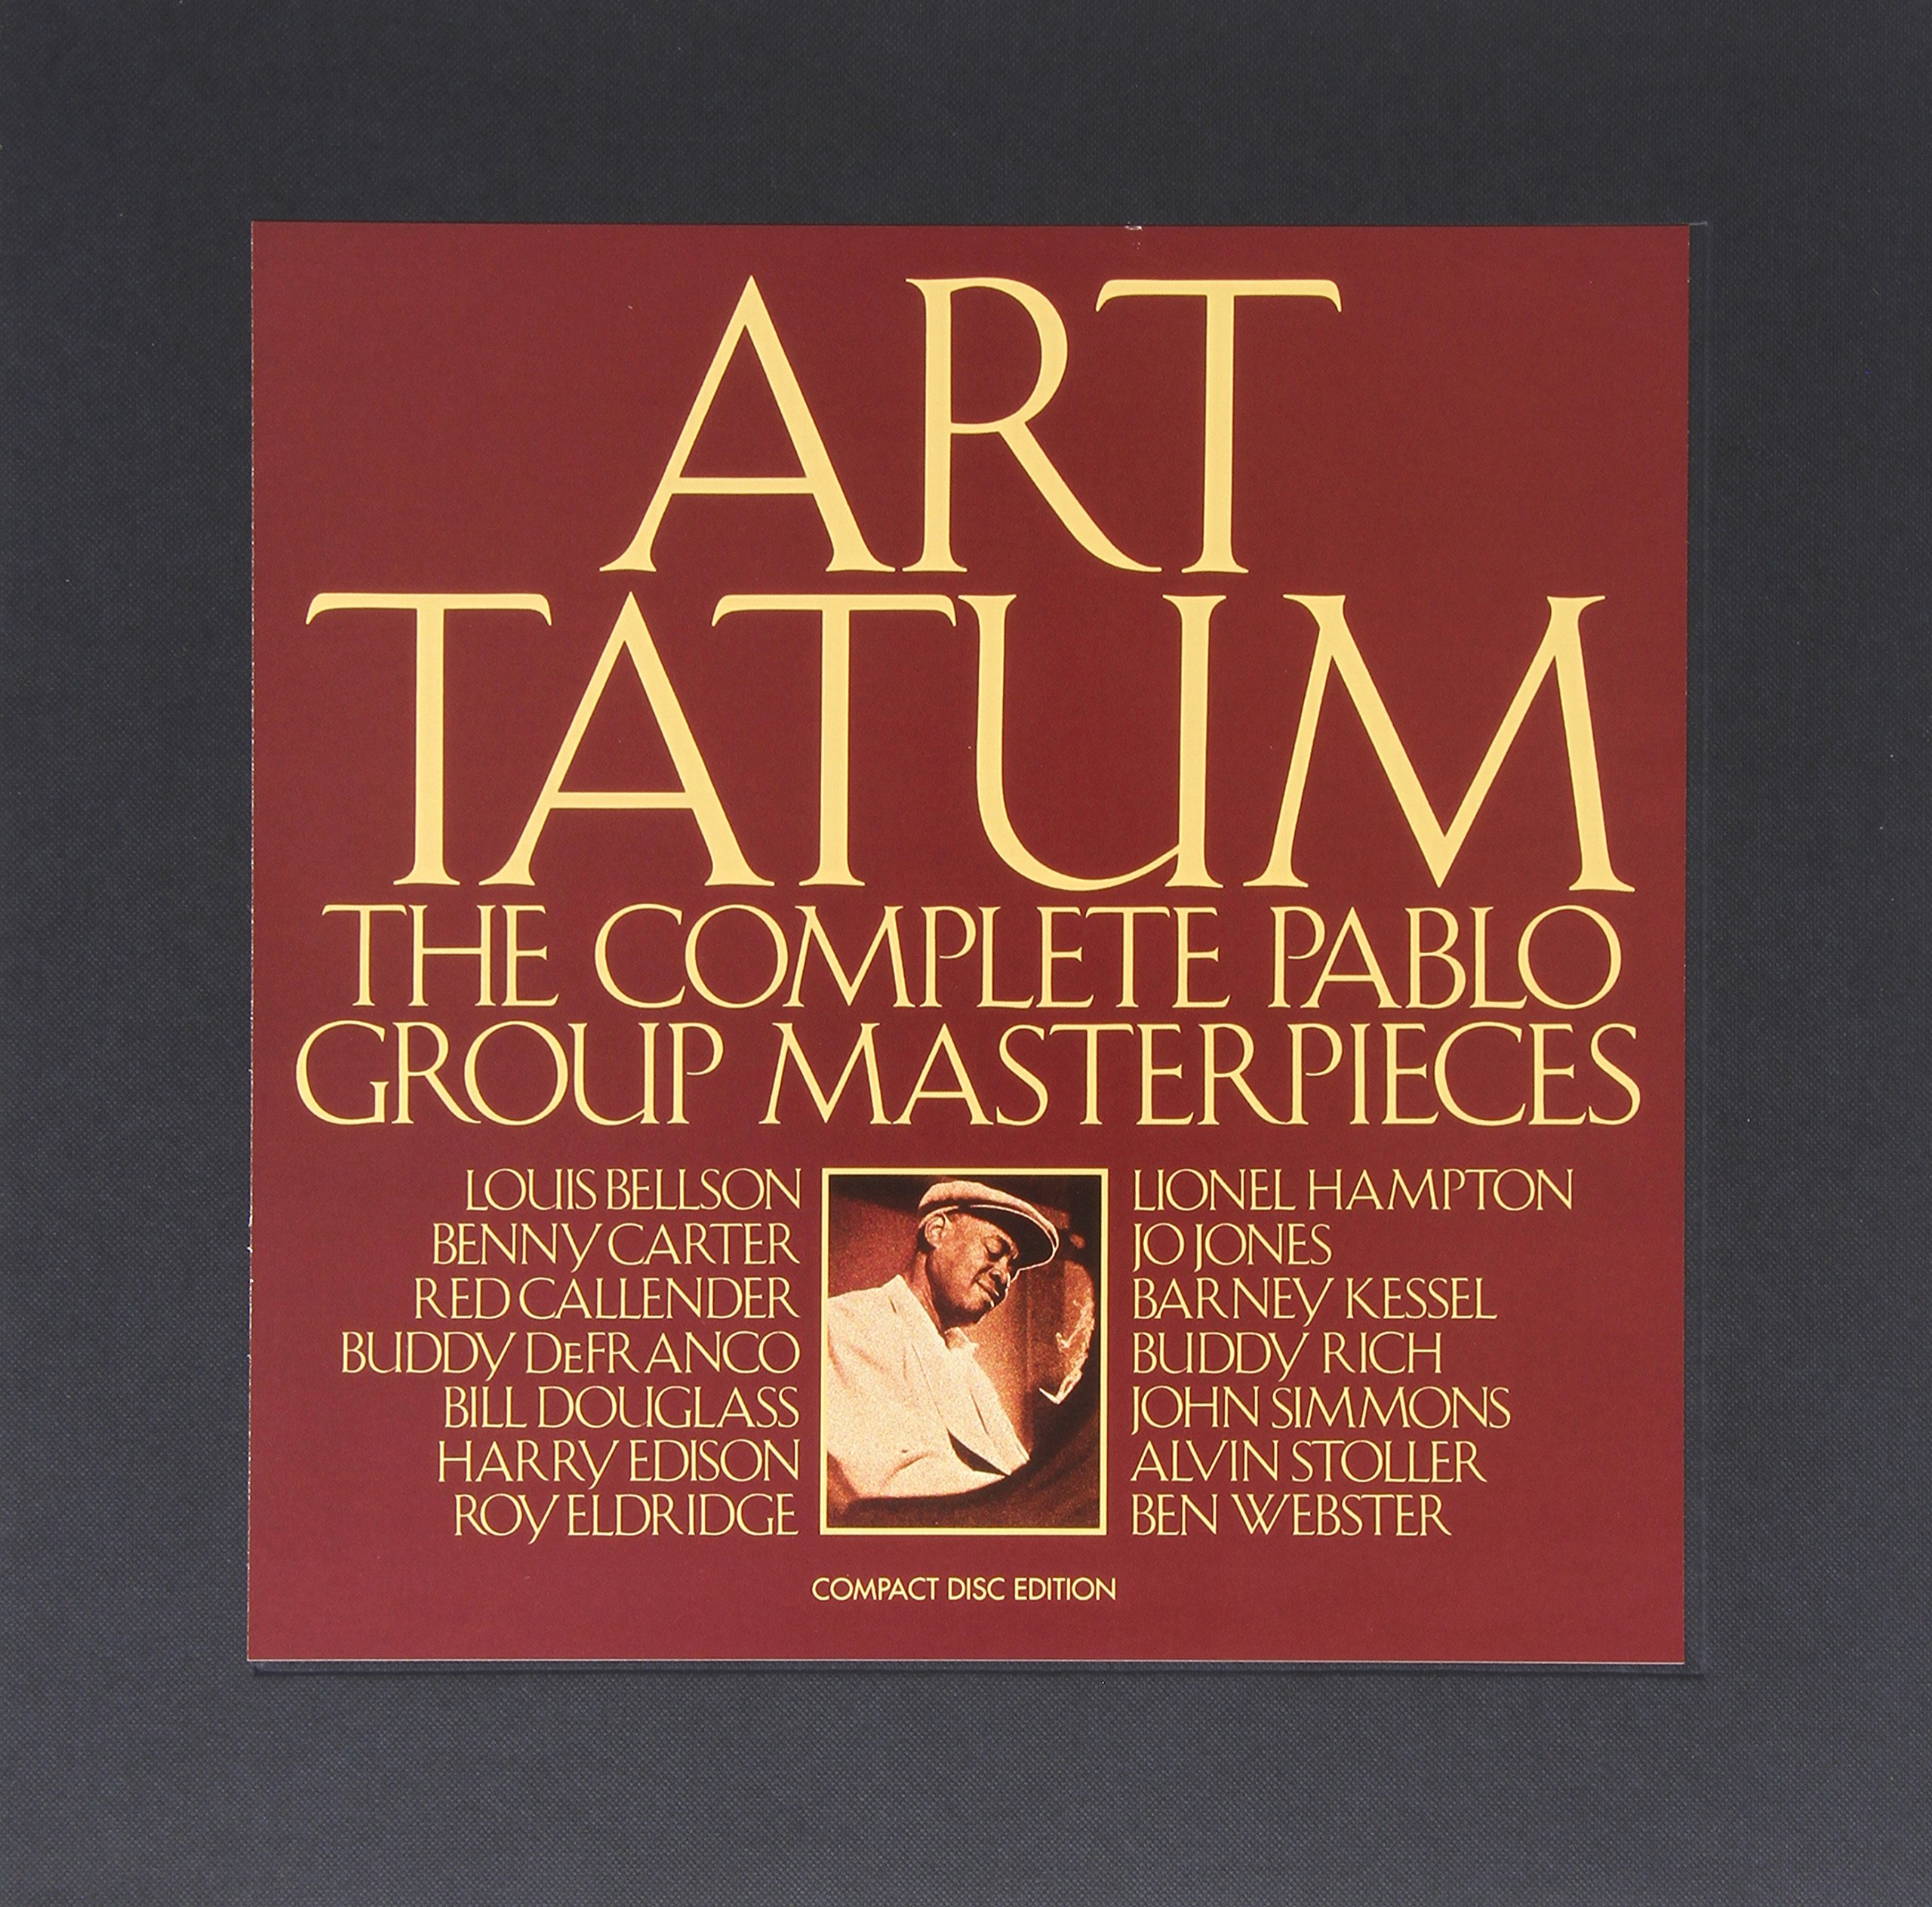 The Complete Pablo Group Masterpieces by Blue Heaven